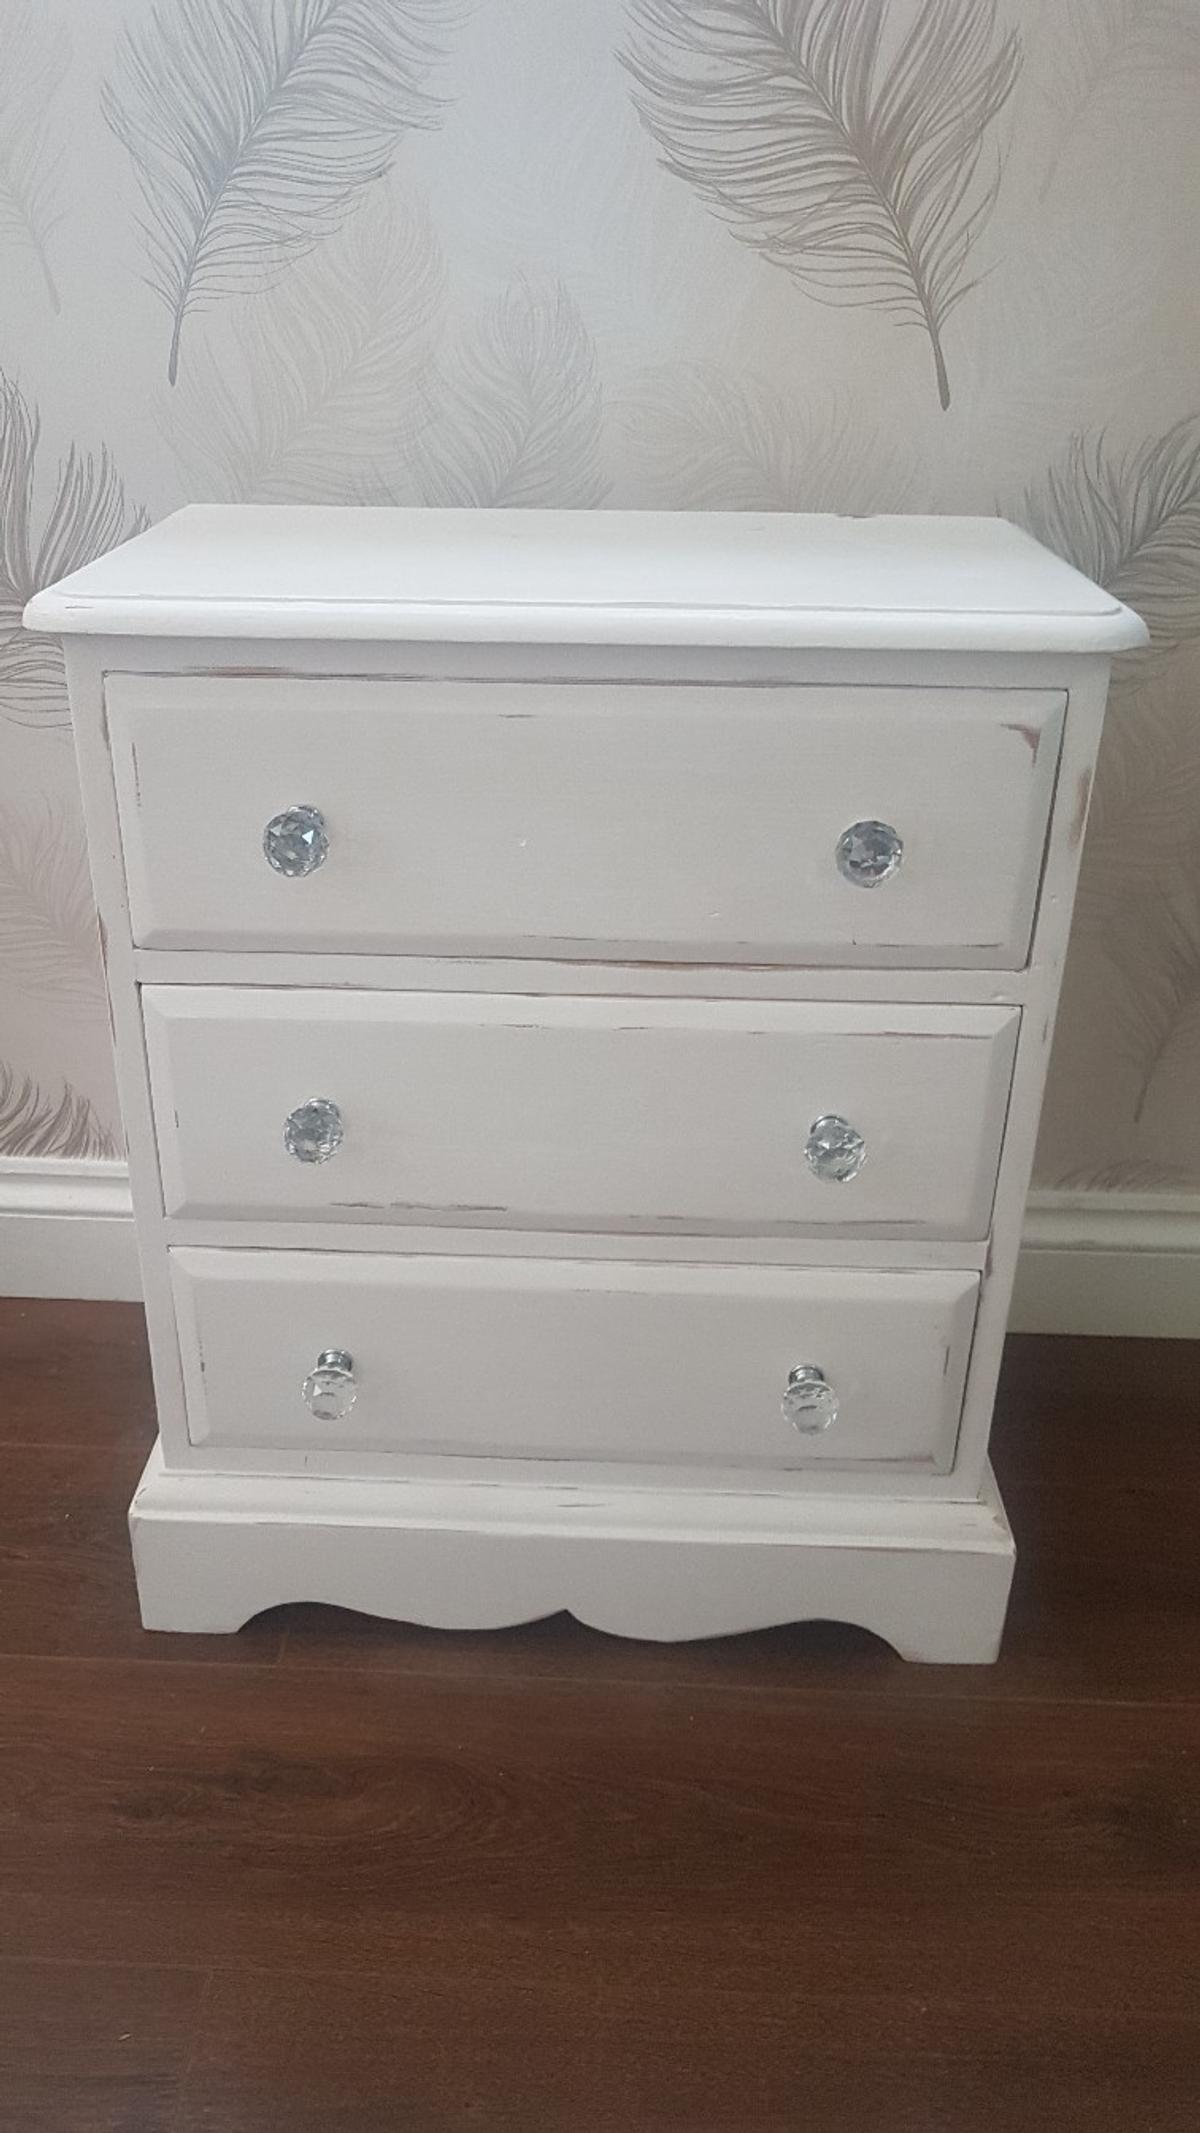 Shabby Chic Upcycled Small Bedroom Furniture In B26